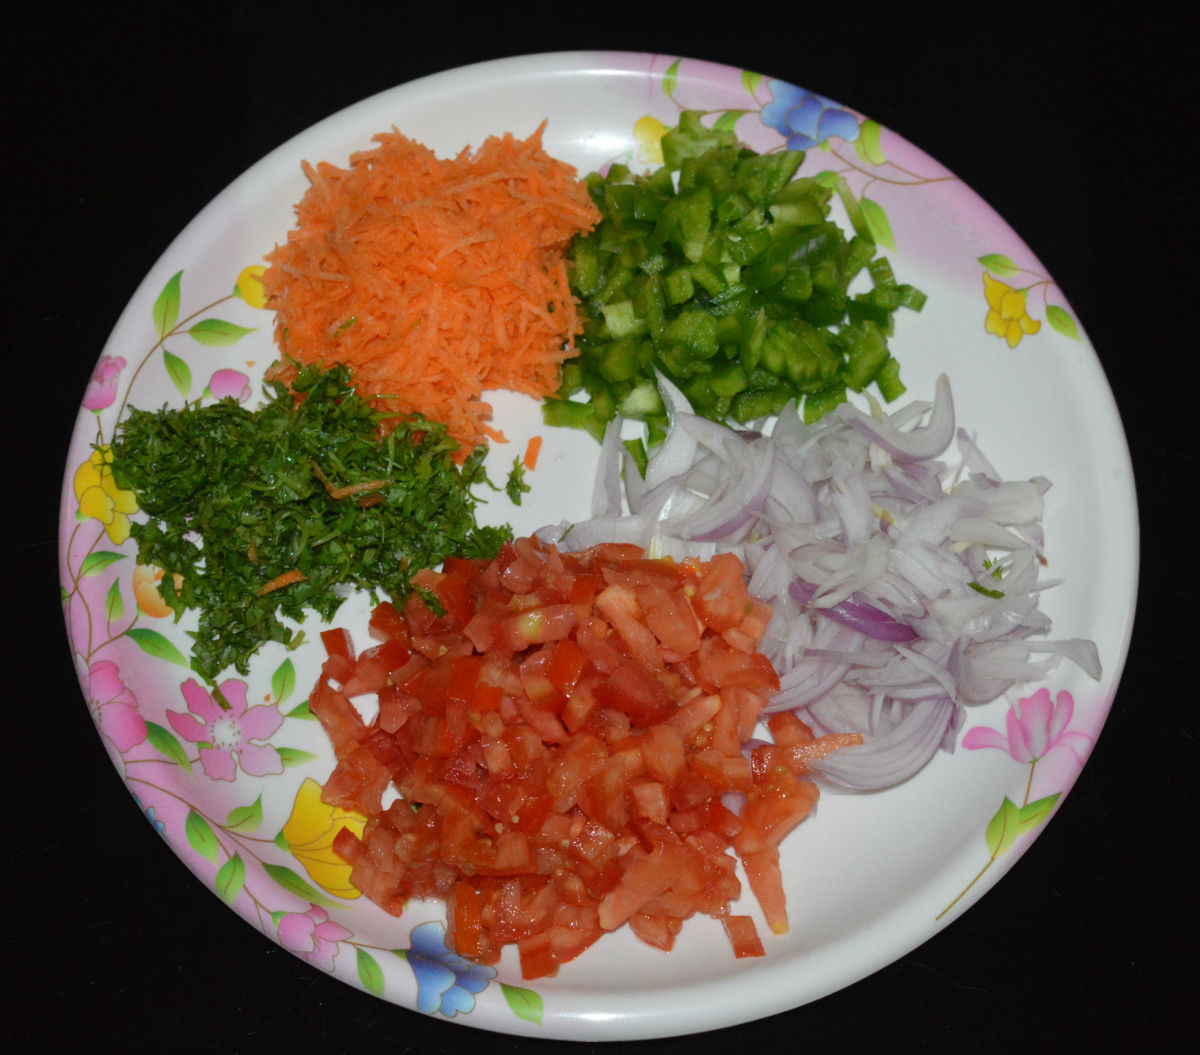 Step one: In a large mixing bowl, add chopped onions, capsicum, tomatoes, coriander leaves, and grated carrot.